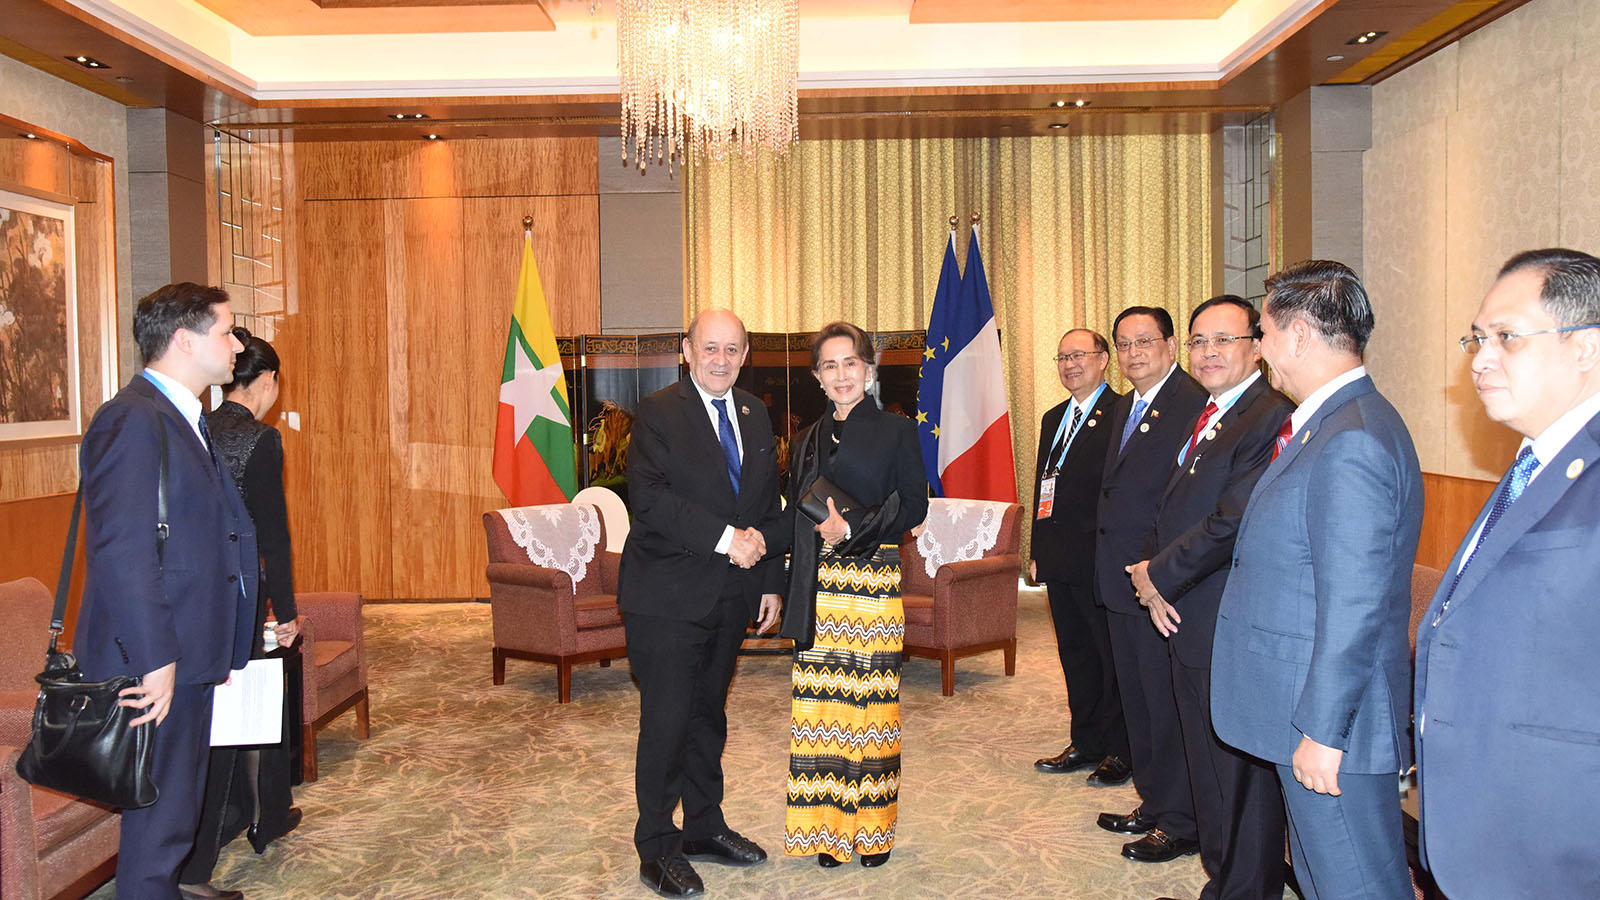 State Counsellor Daw Aung San Suu Kyi shakes hands with the French Minister for Europe and Foreign Affairs, Mr. Jean-Yves Le Drian, while attending the Belt and Road forum in China. photo: mna